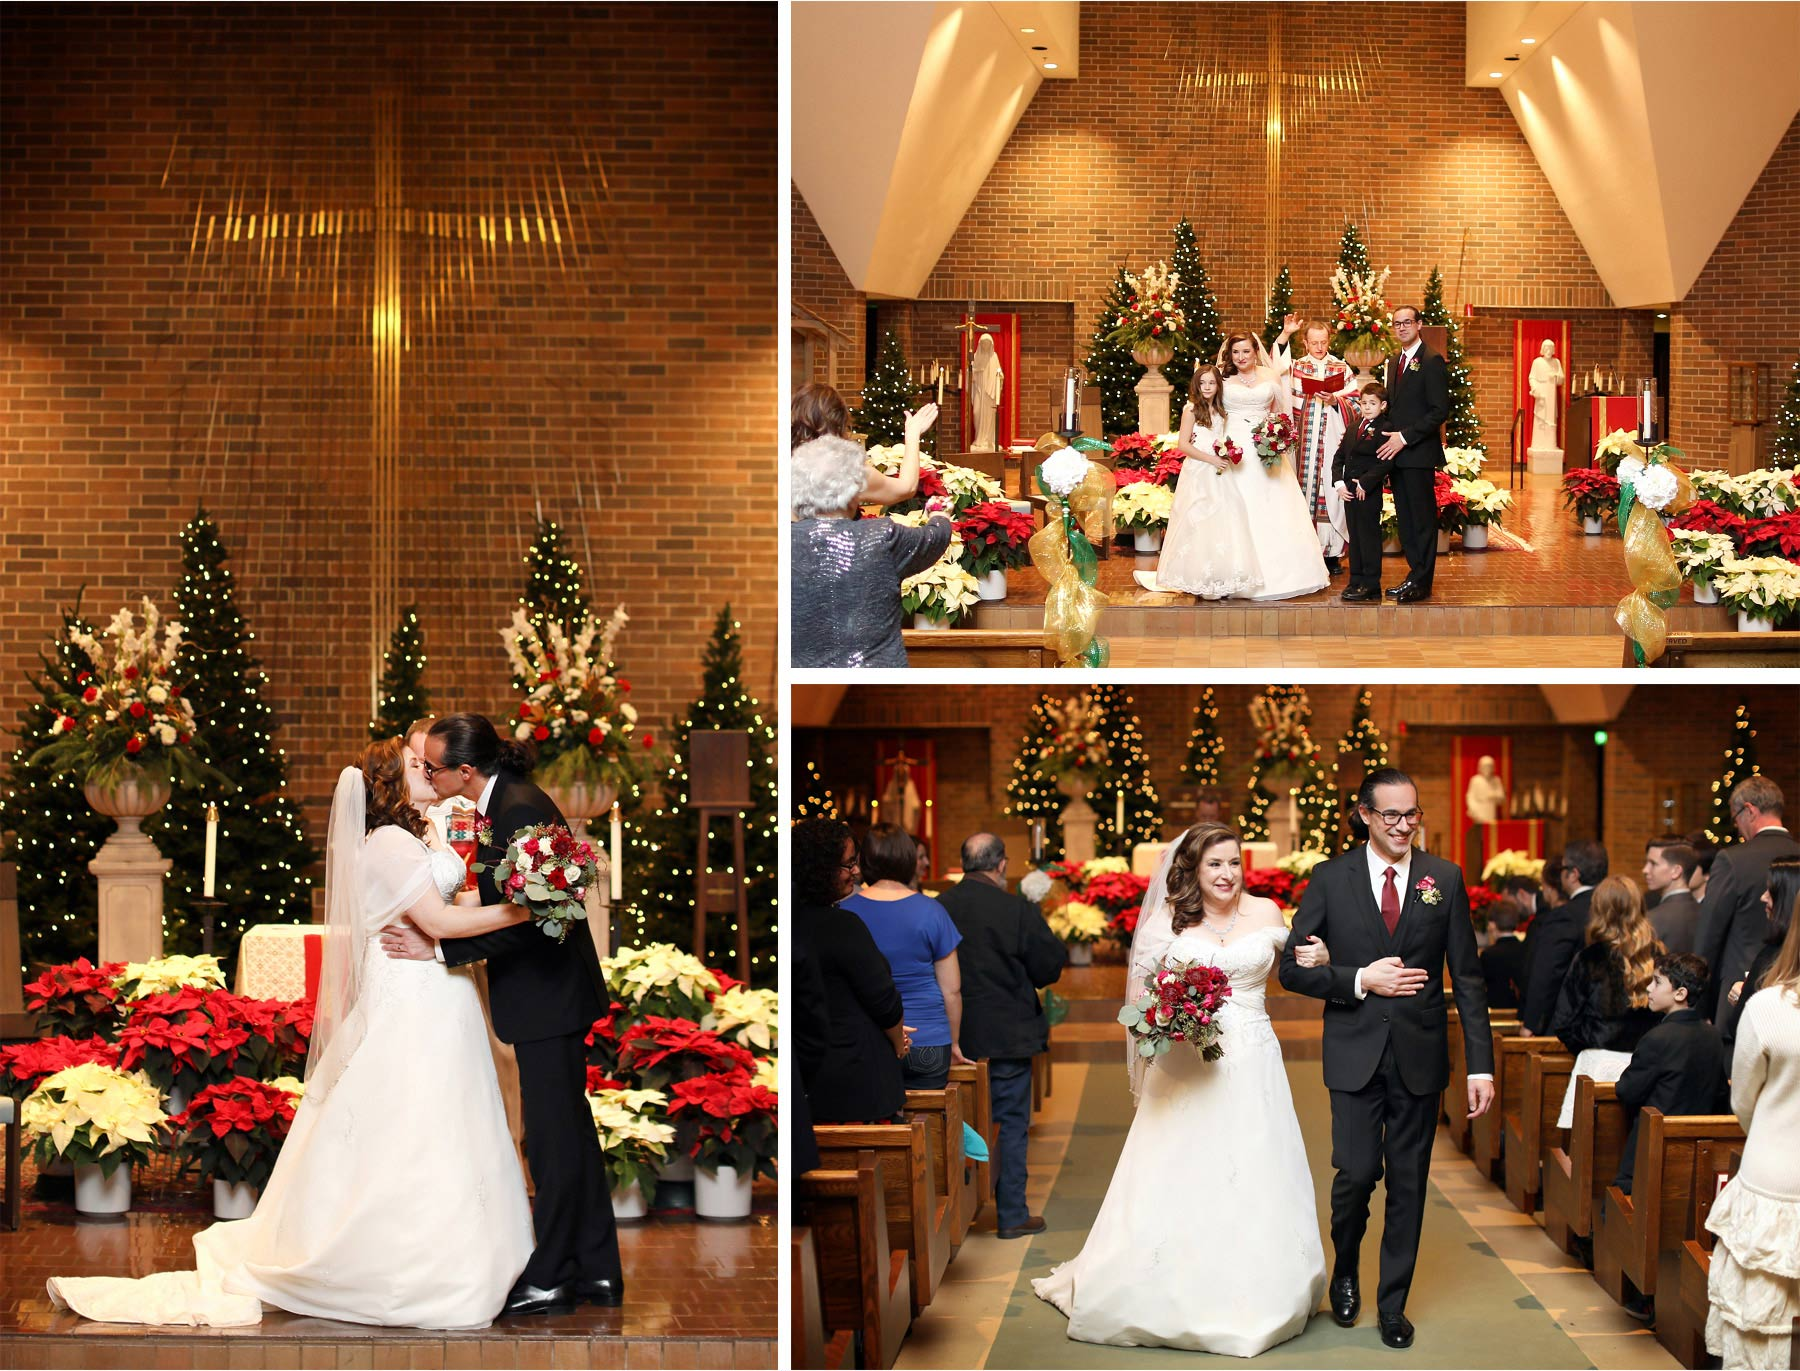 14-Edina-Minnesota-Wedding-Photographer-by-Andrew-Vick-Photography-Winter-Saint-Patricks-Catholic-Church-Ceremony-Bride-Groom-Flower-Girl-Ring-Bearer-Prayer-Kiss-Recessional-Elizabeth-and-Brian.jpg.jpg